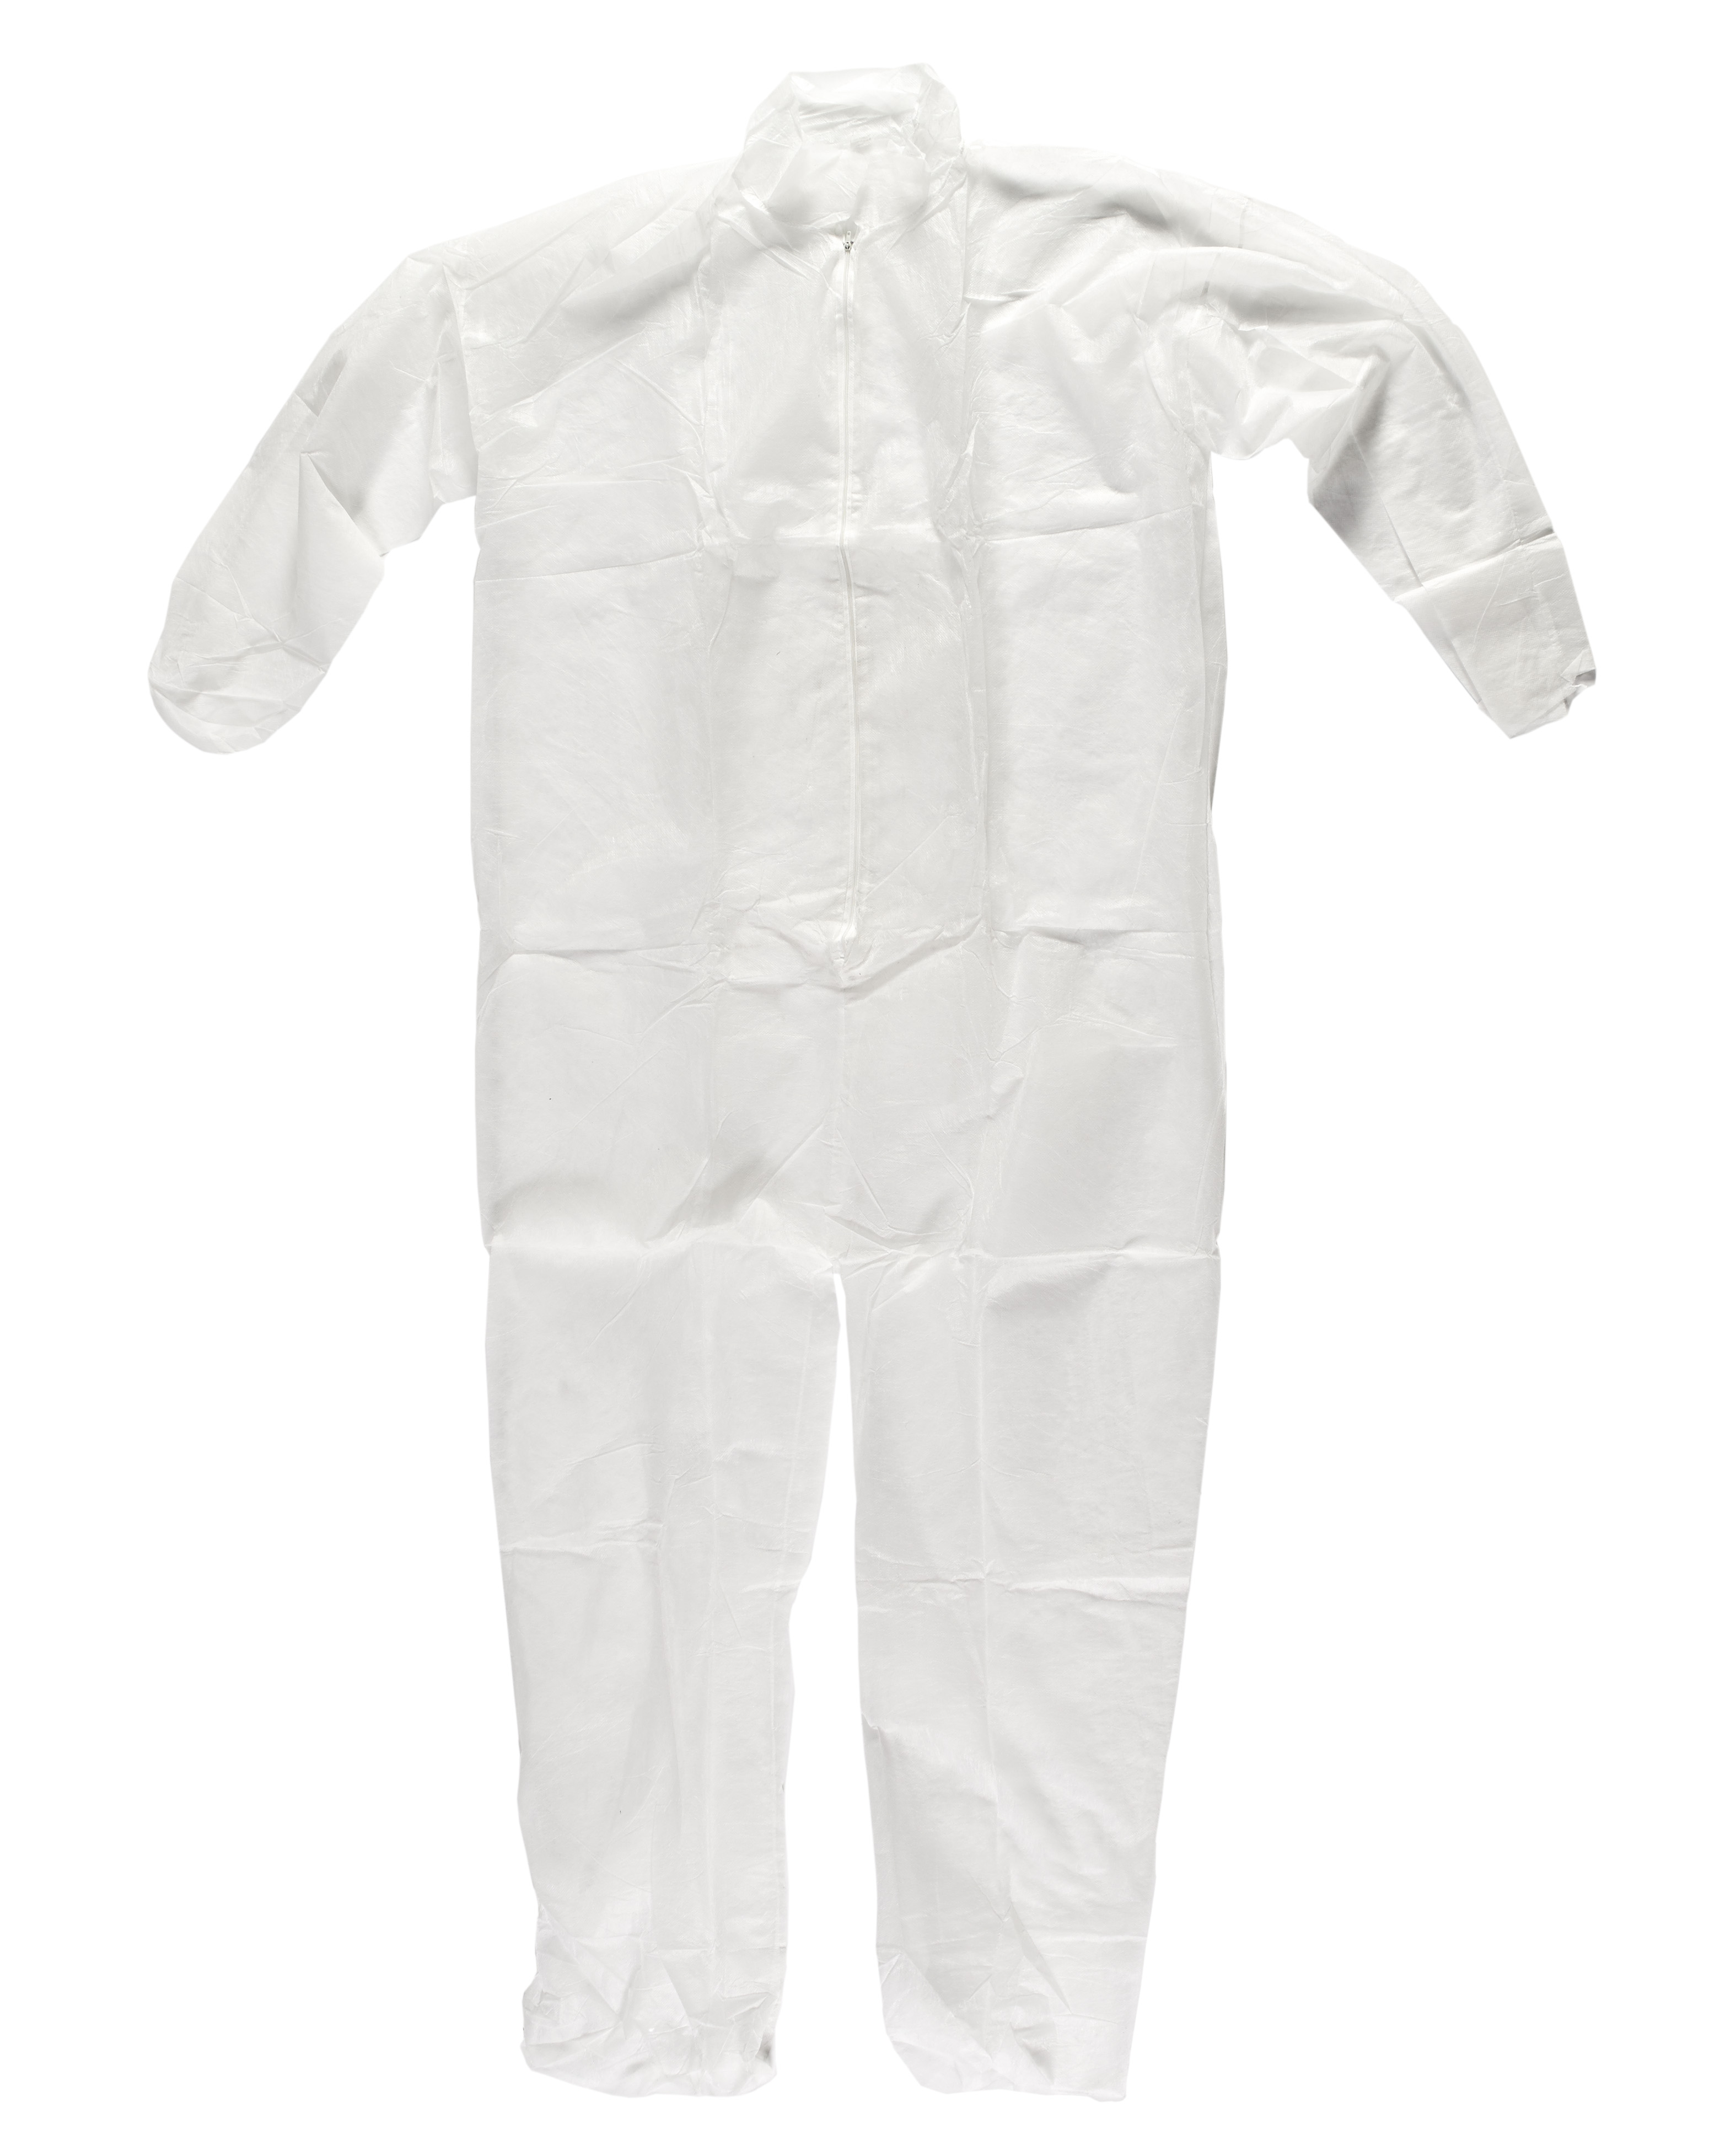 Disposable Polypro Coverall, 30 g, XX-Large, White (Pack of 25)